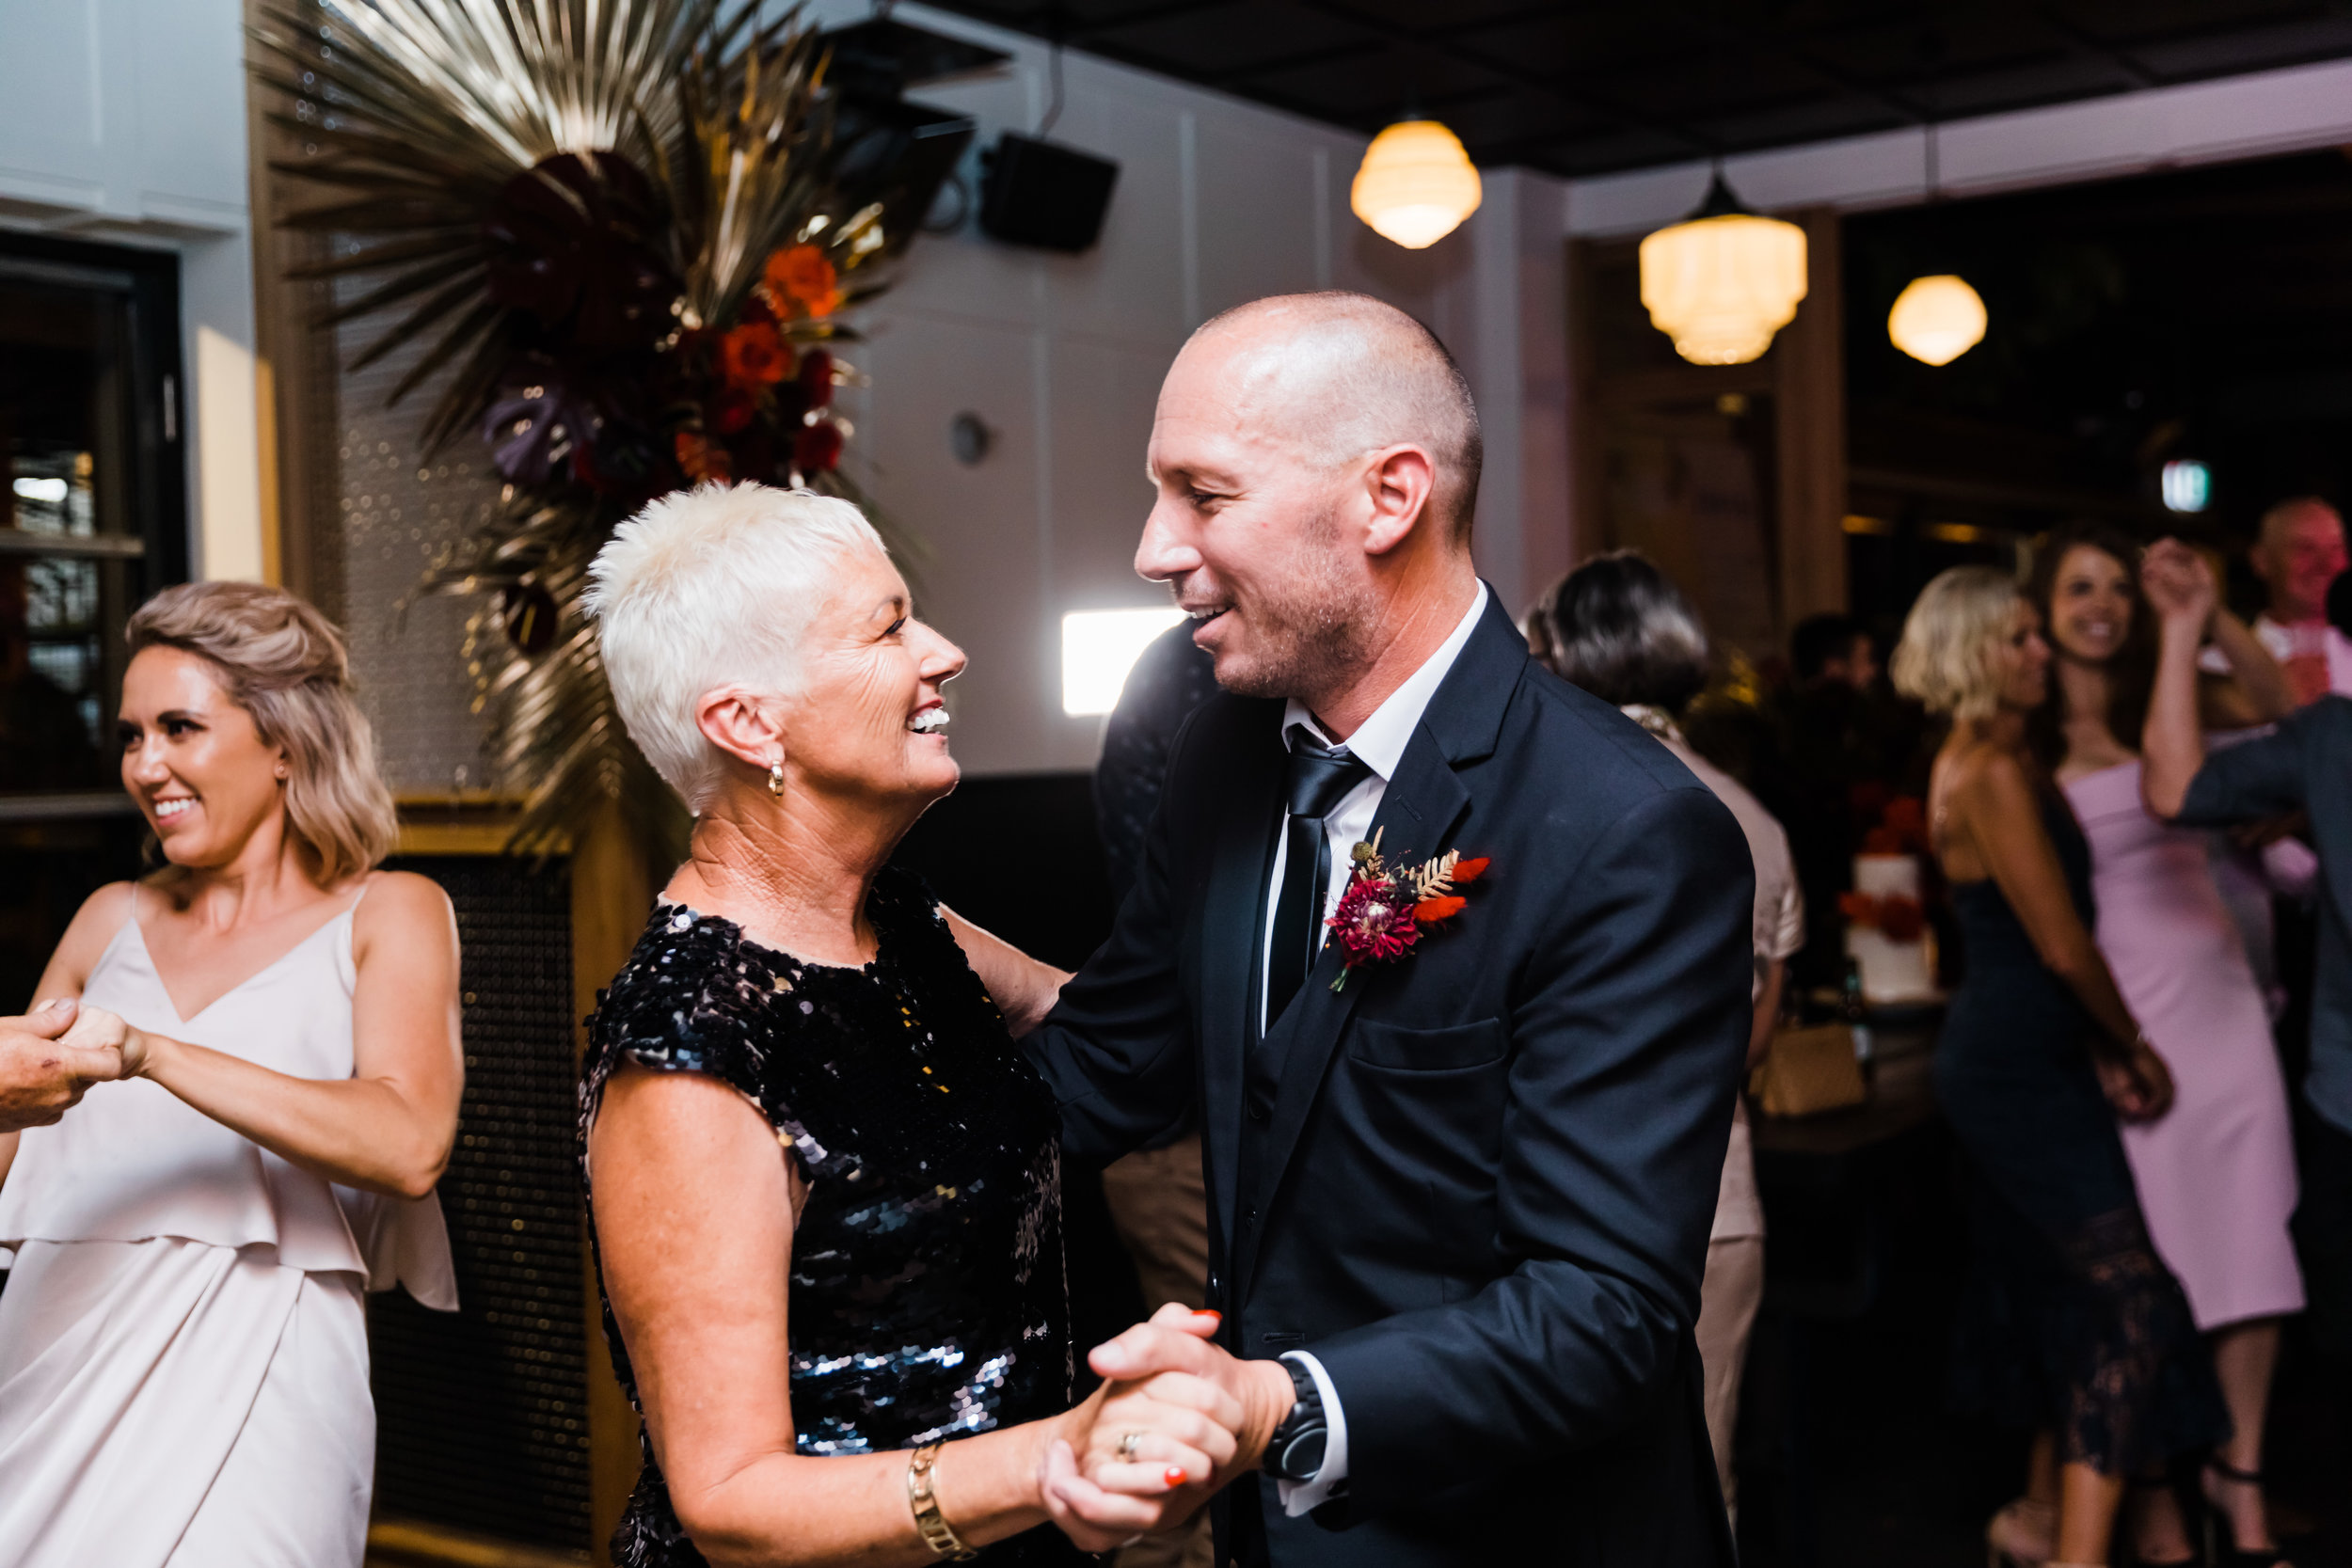 newcastle-wedding-nerida-michael-102.jpg